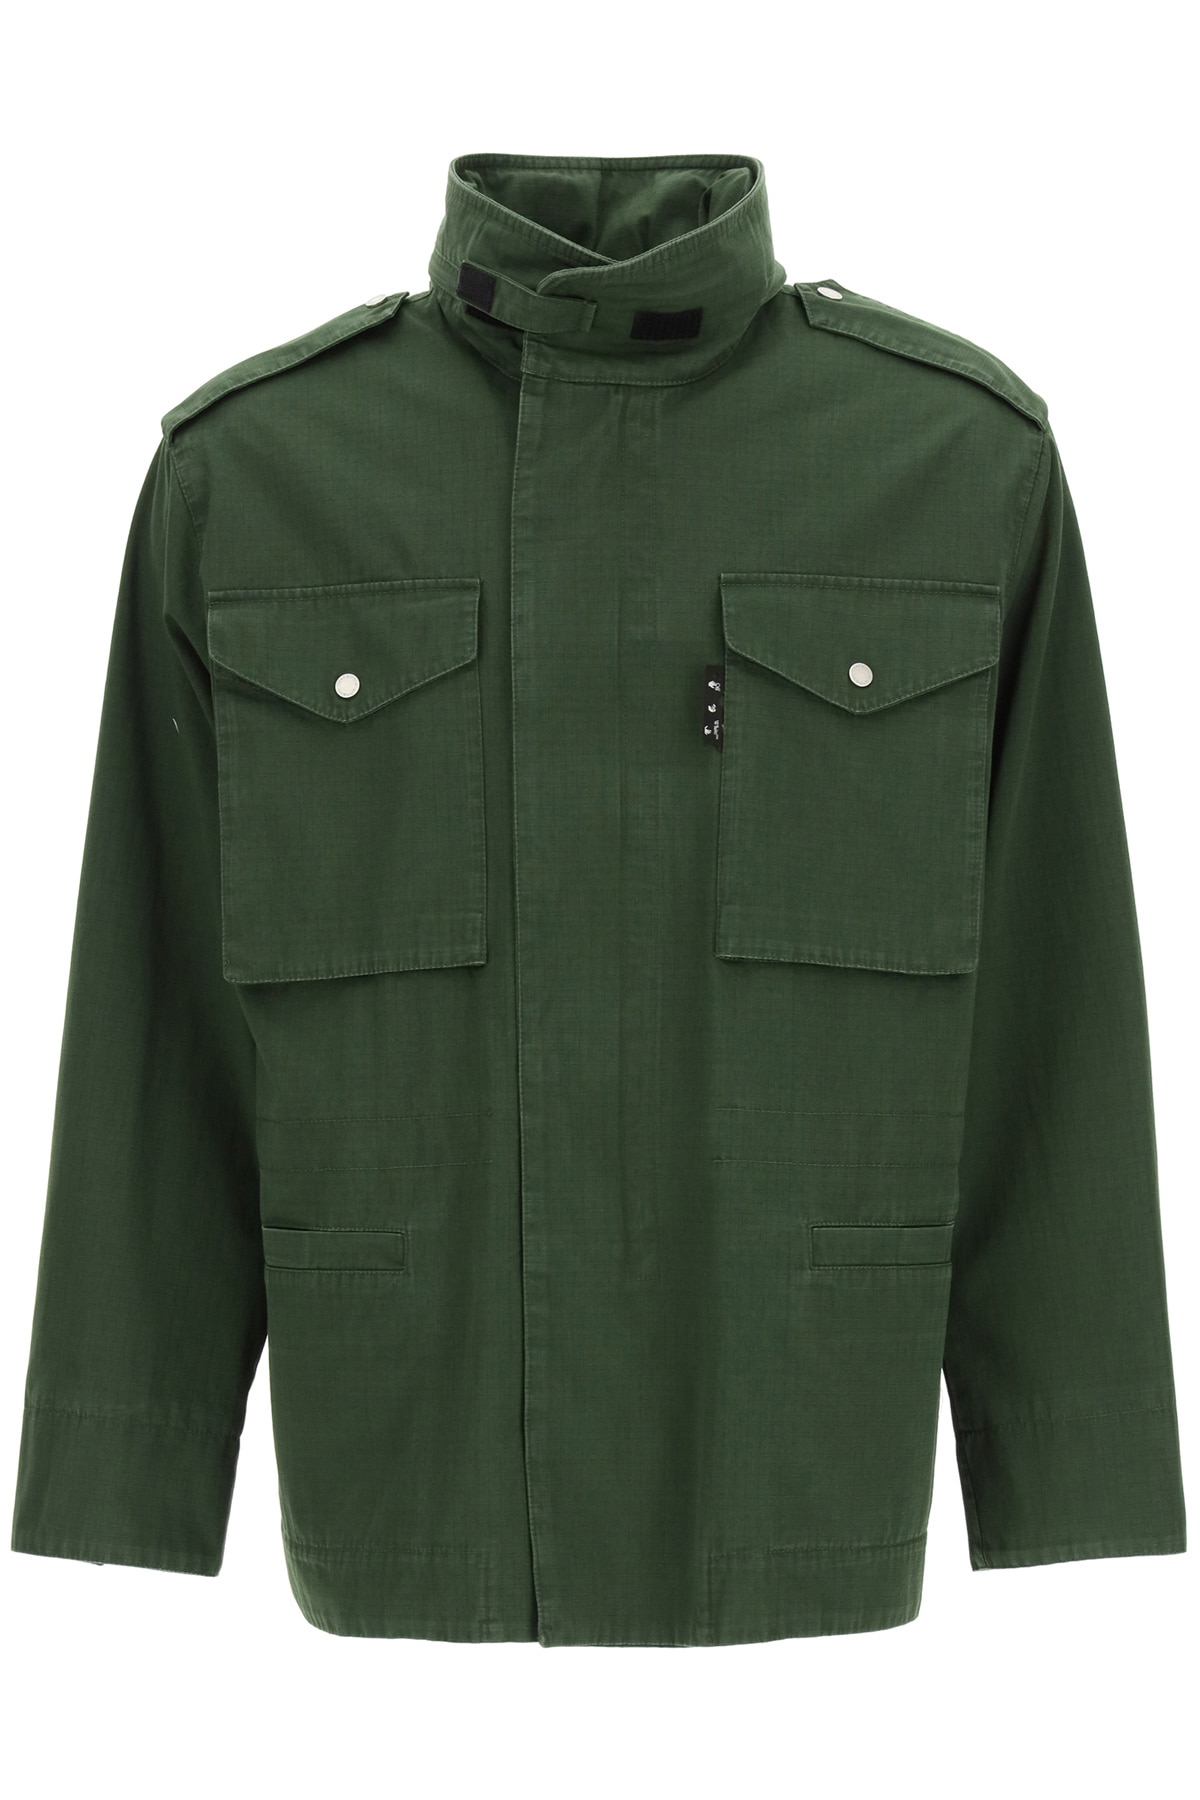 OFF-WHITE COTTON FIELD JACKET L Green Cotton